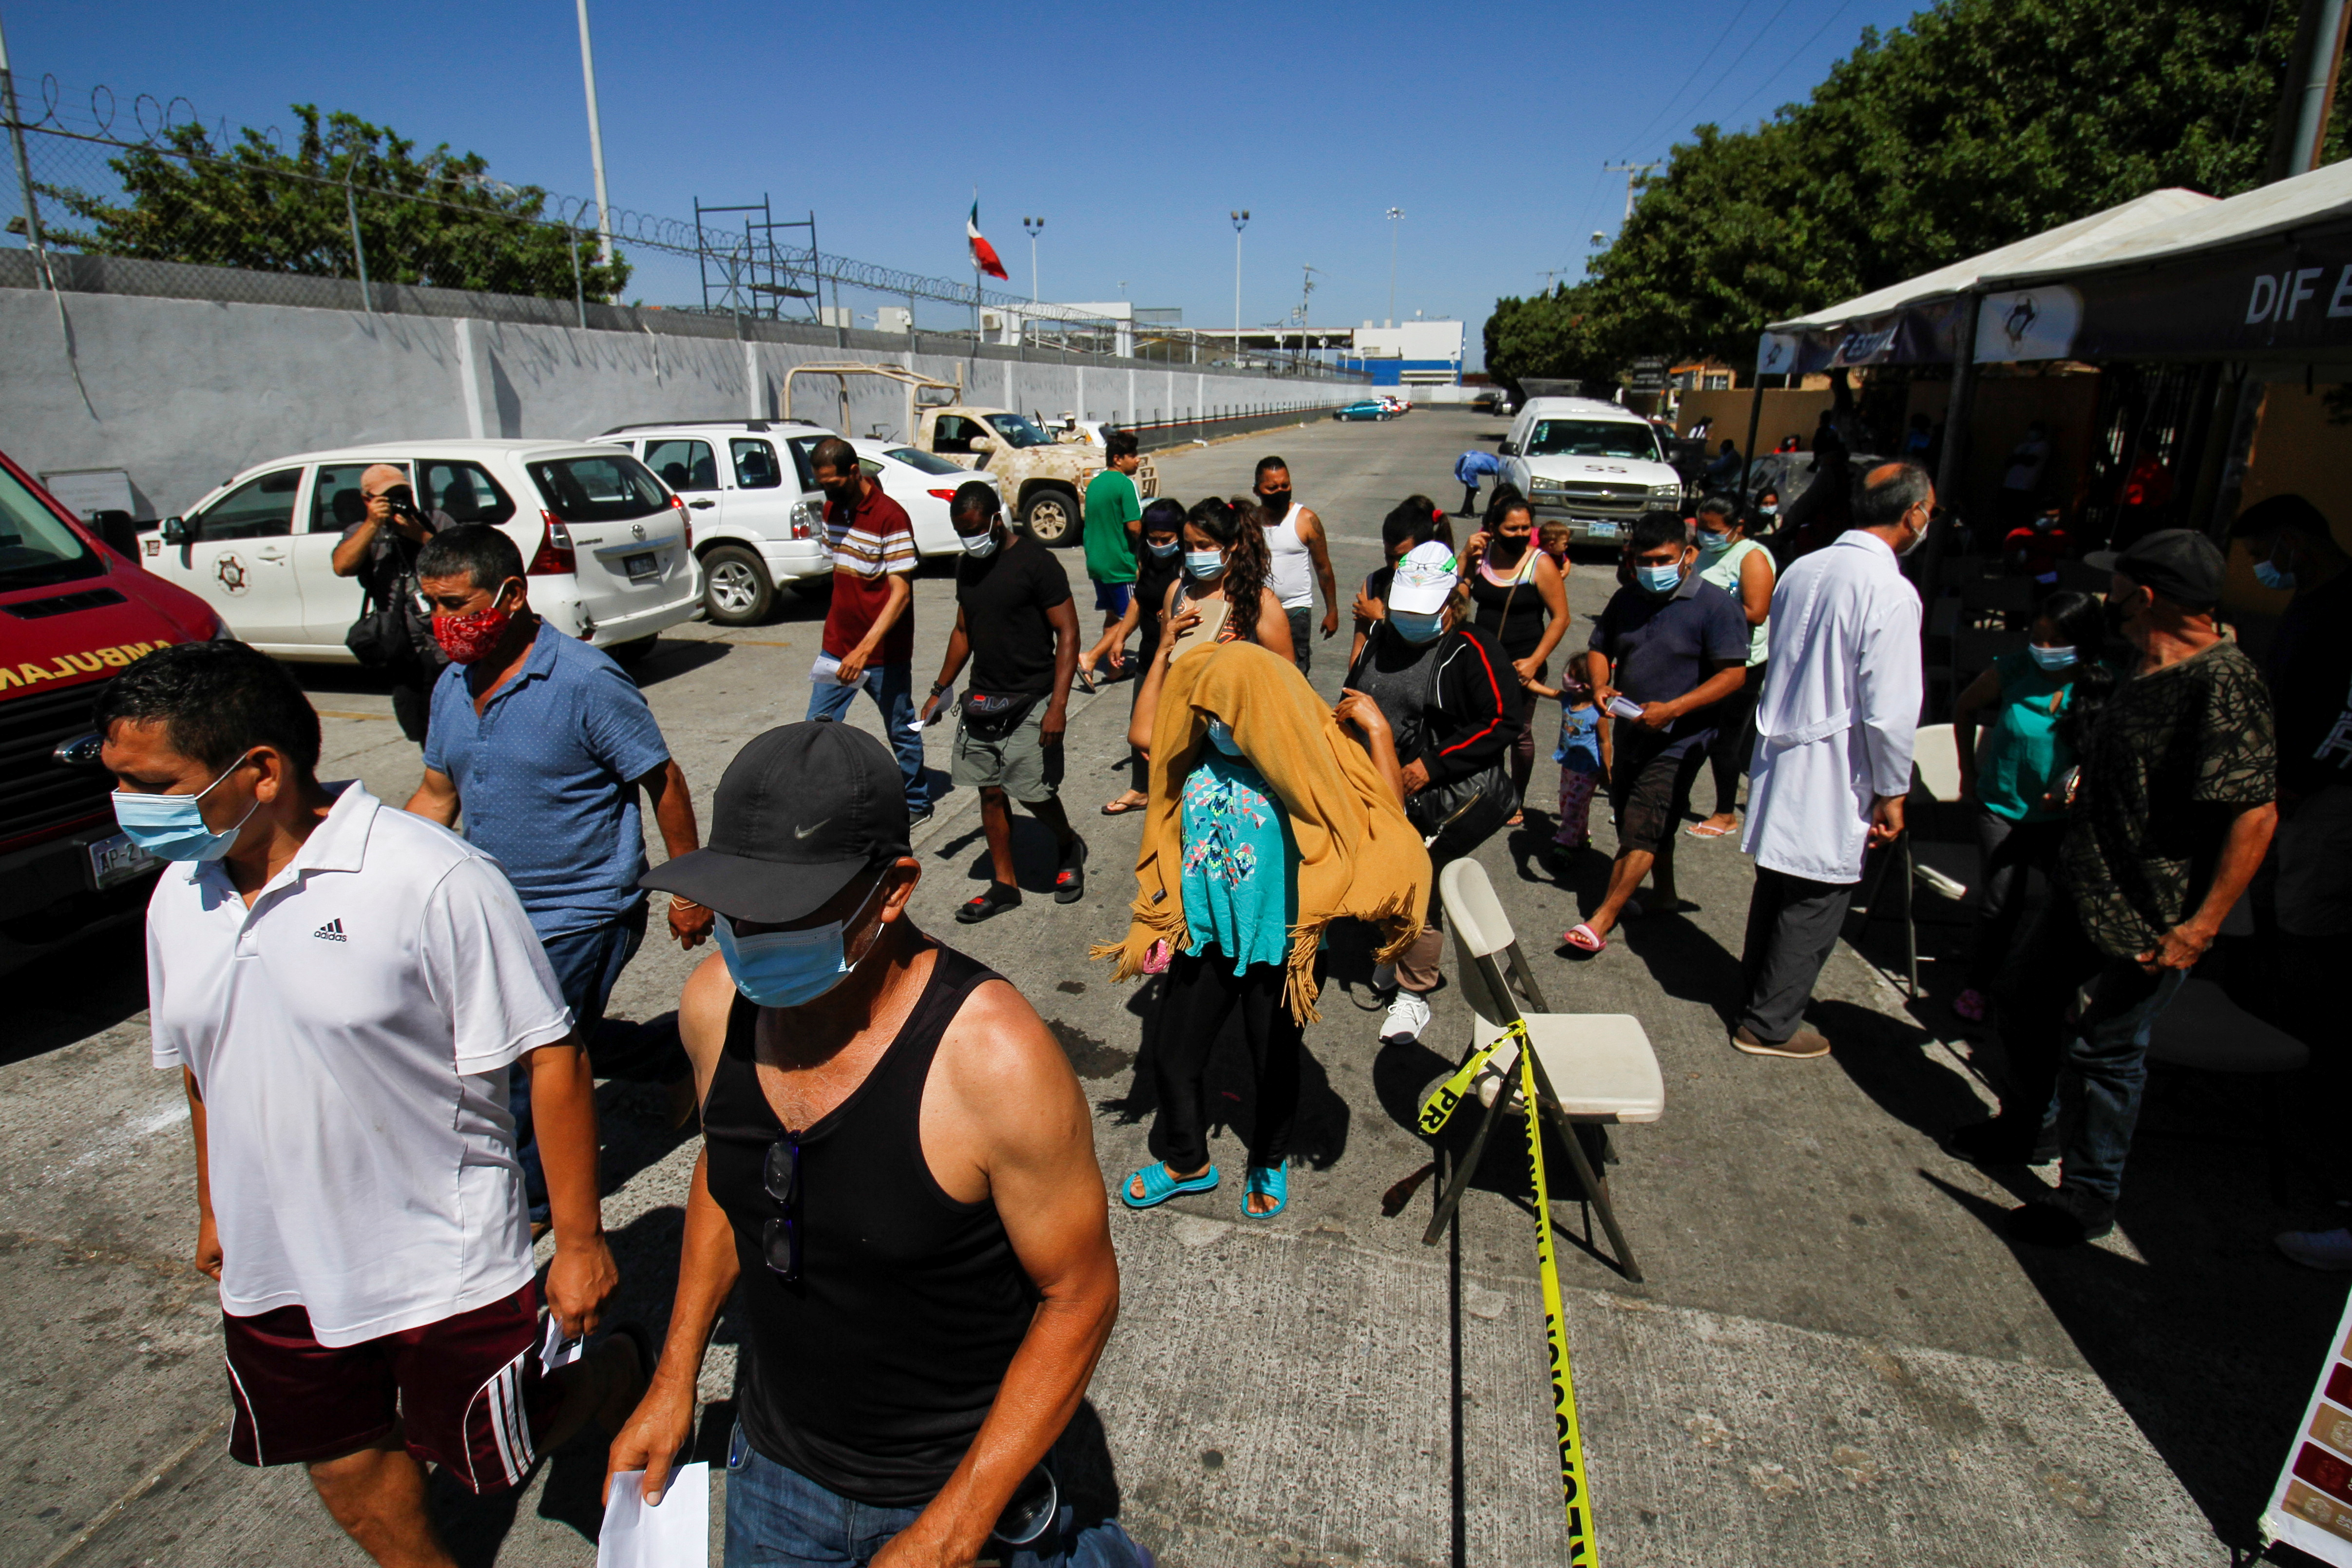 Migrants camping at the El Chaparral border port of entry with the U.S. leave a vaccination point after receiving a dose of the Pfizer BioNTech coronavirus disease (COVID-19) vaccine, amid Republican criticism that the Delta variant is spreading in southern U.S. states because of increased border crossings, in Tijuana, Mexico August 3, 2021. REUTERS/Jorge Duenes